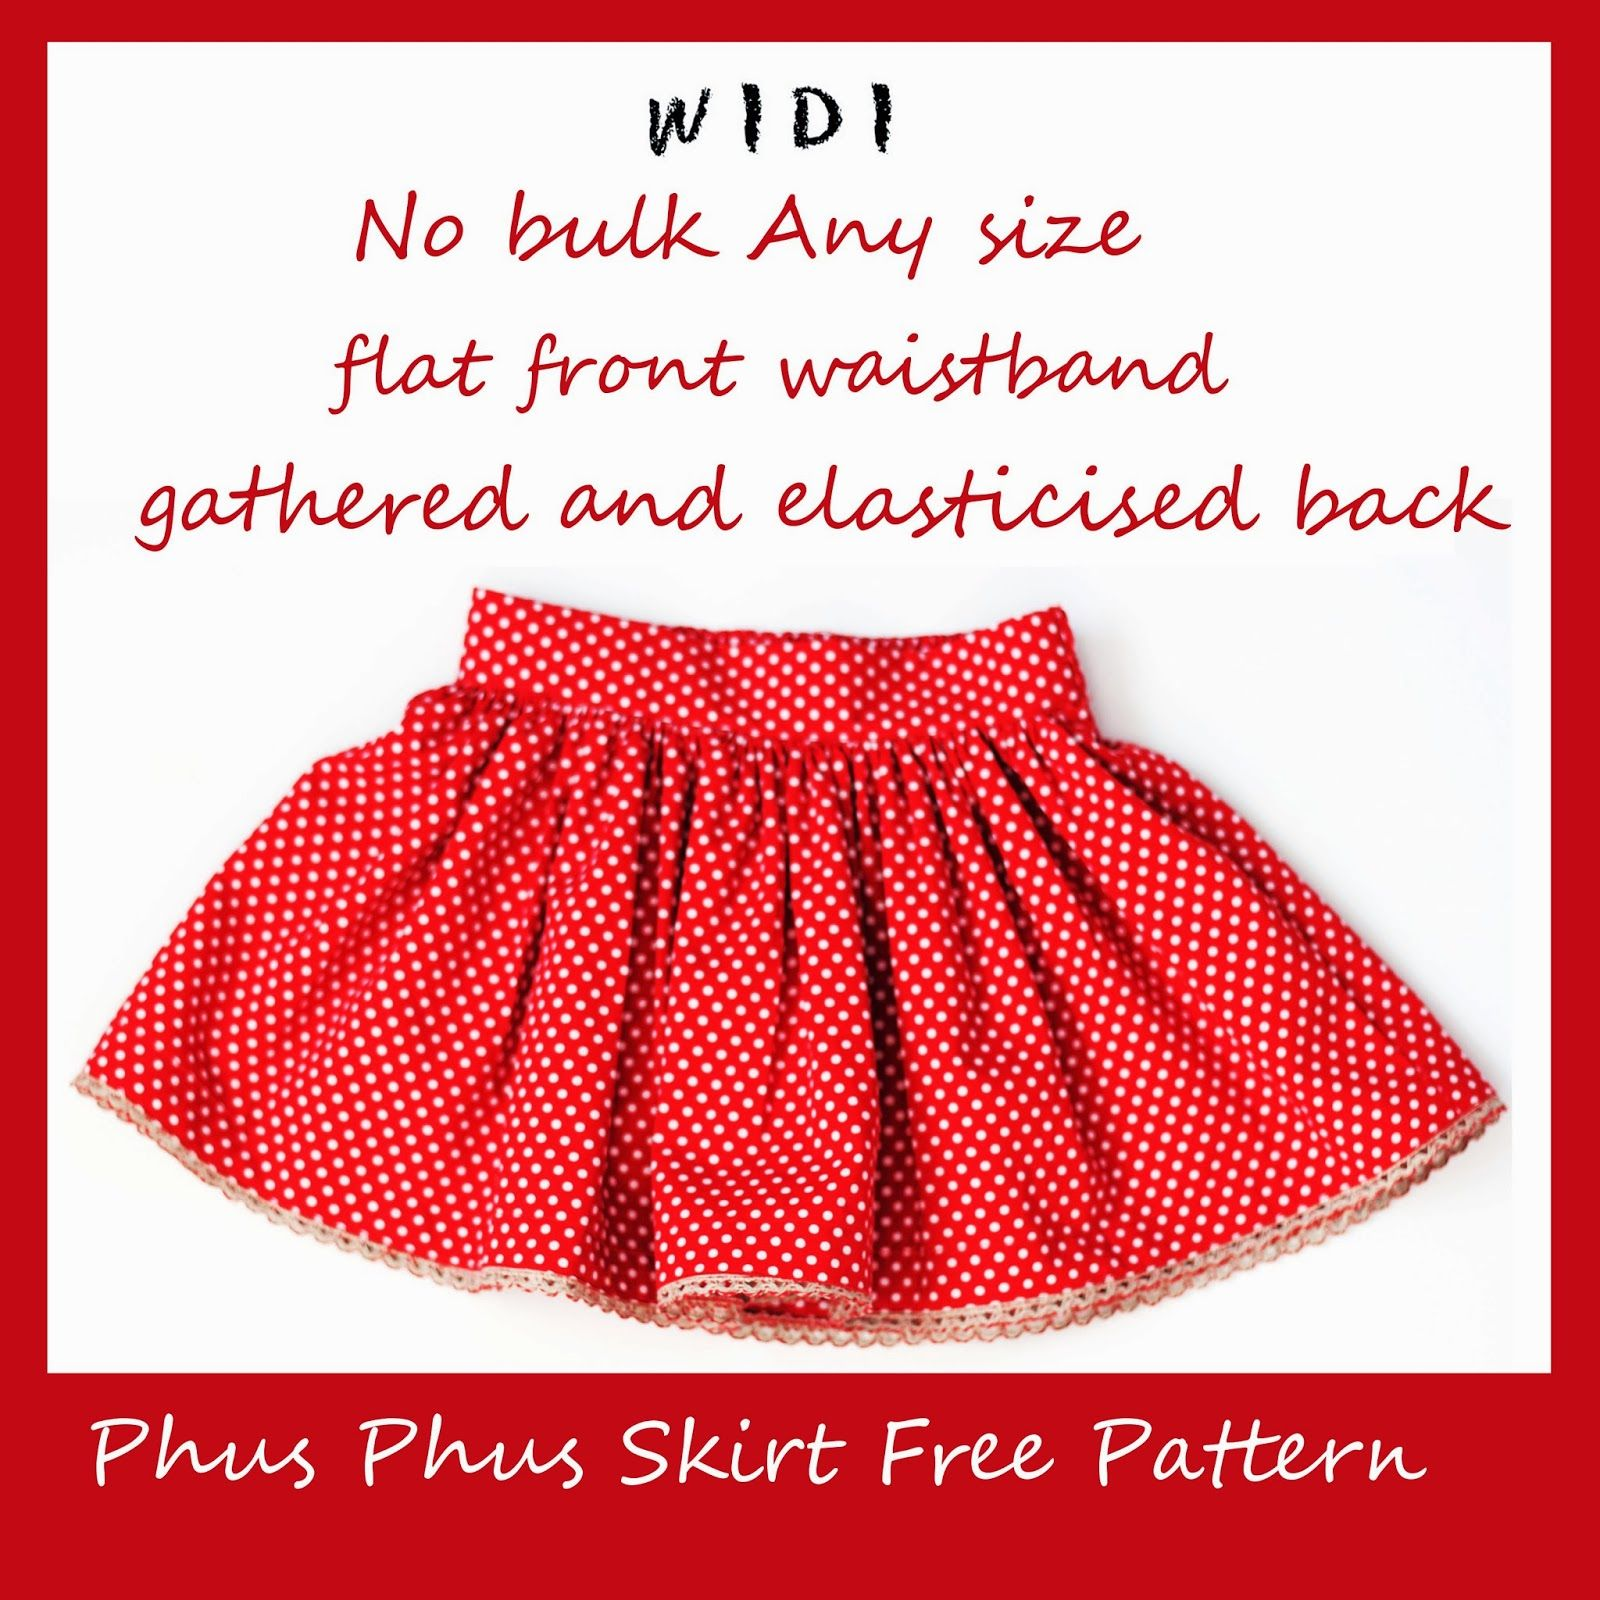 Widi sewing blog step by step instructions tutorials free widi sewing blog step by step instructions tutorials free patterns baditri Gallery